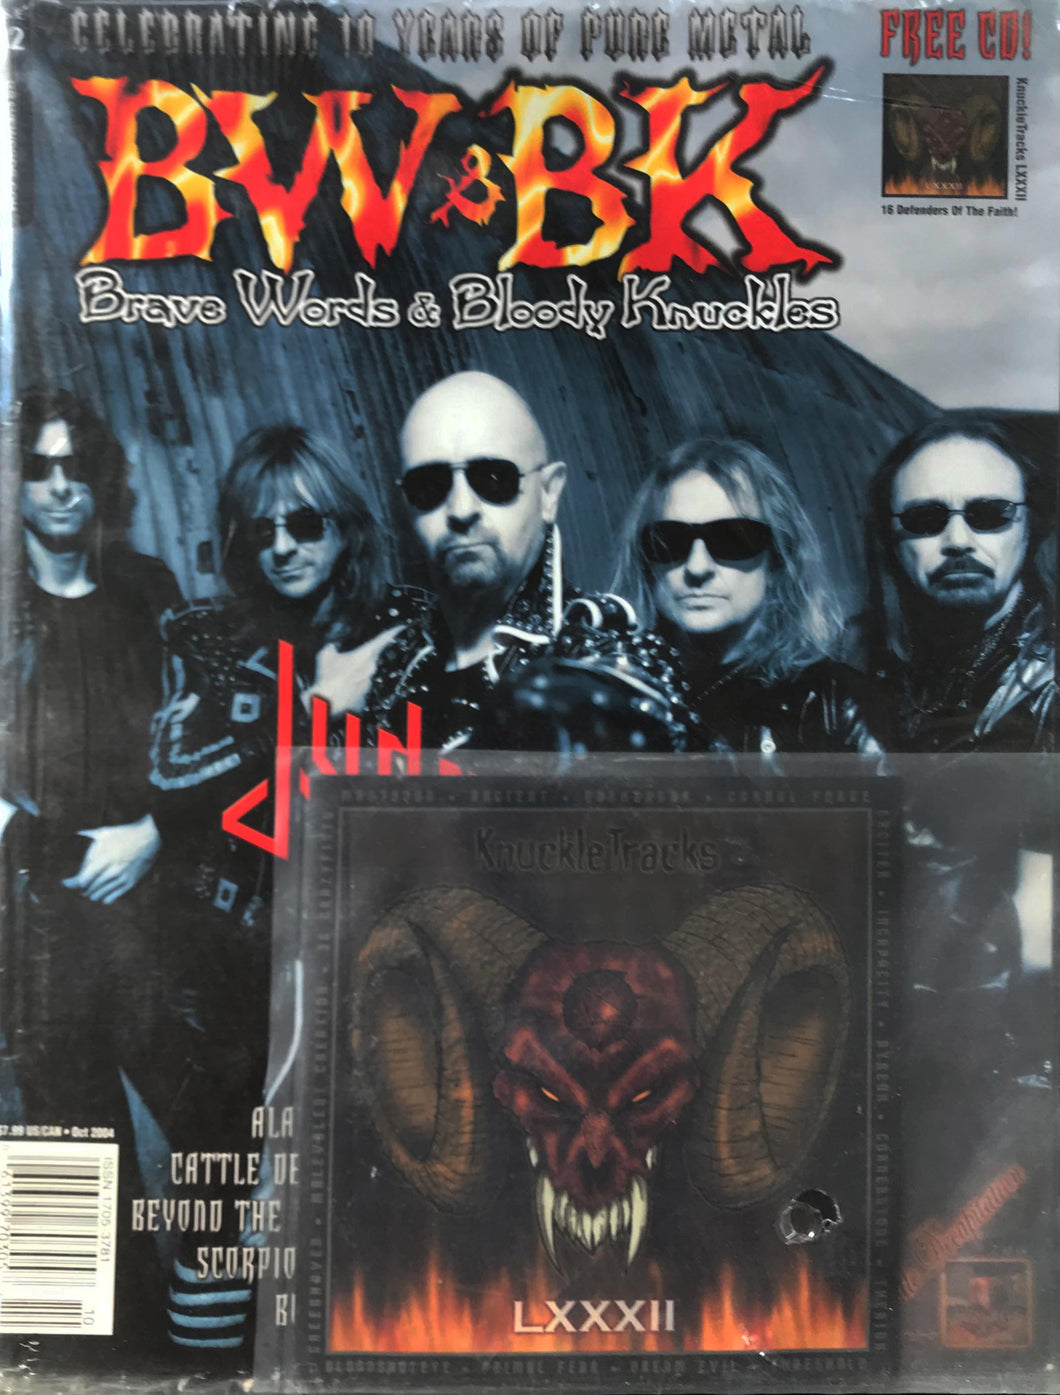 BW&BK Issue 82 (Judas Priest) w/ FREE CD !